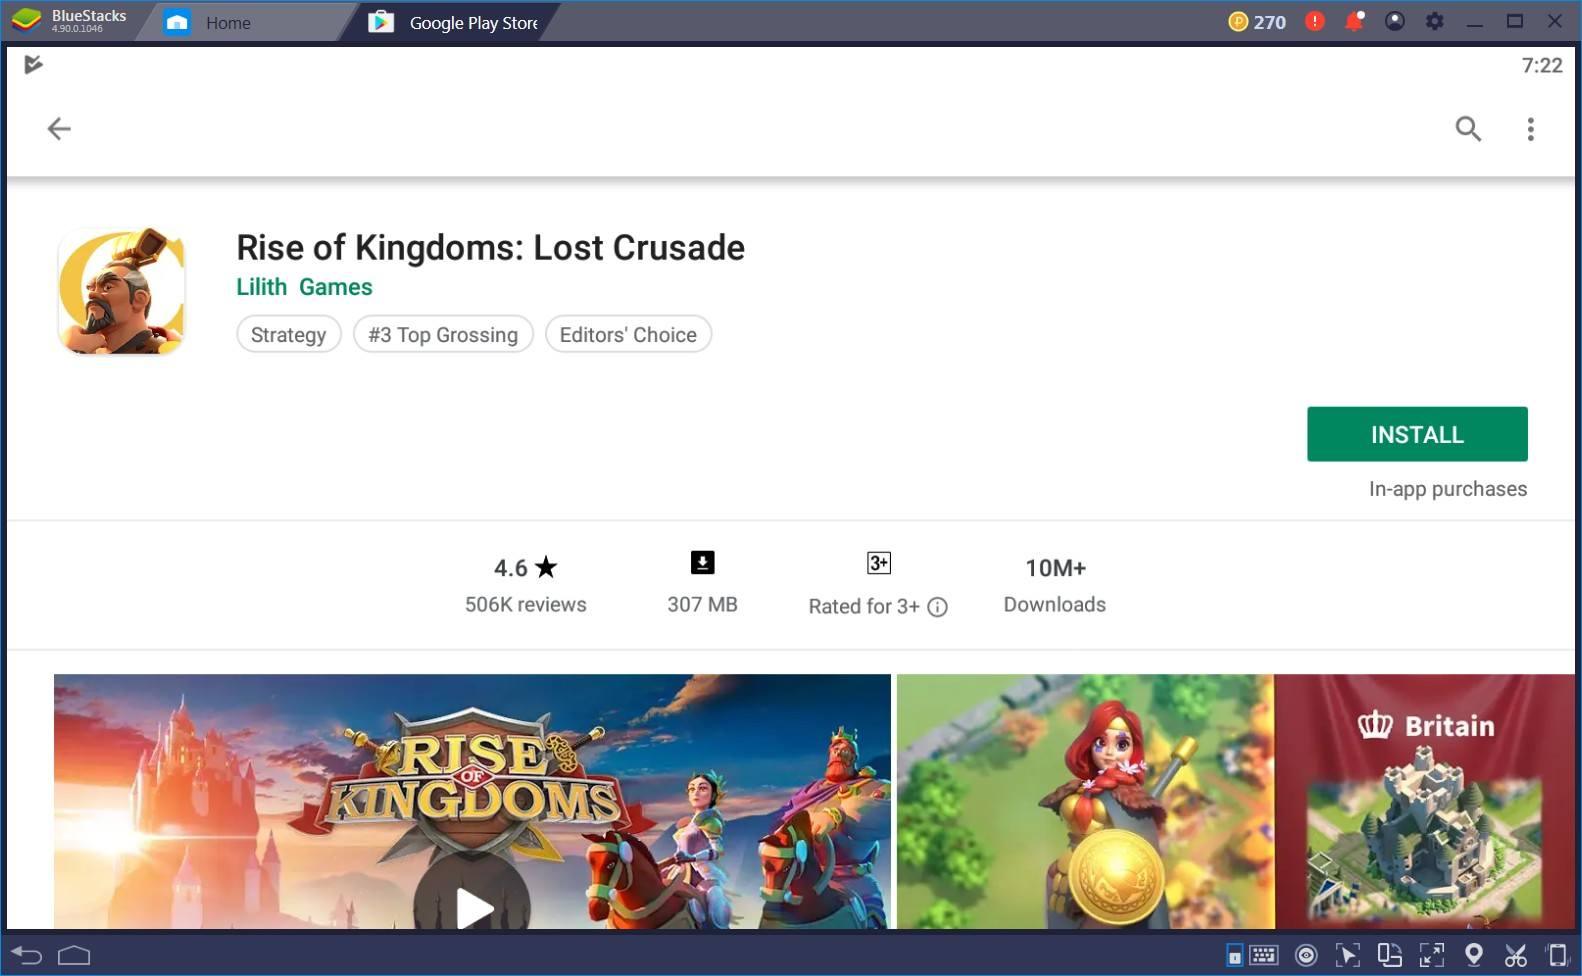 Cara Memainkan Rise of Kingdoms di PC